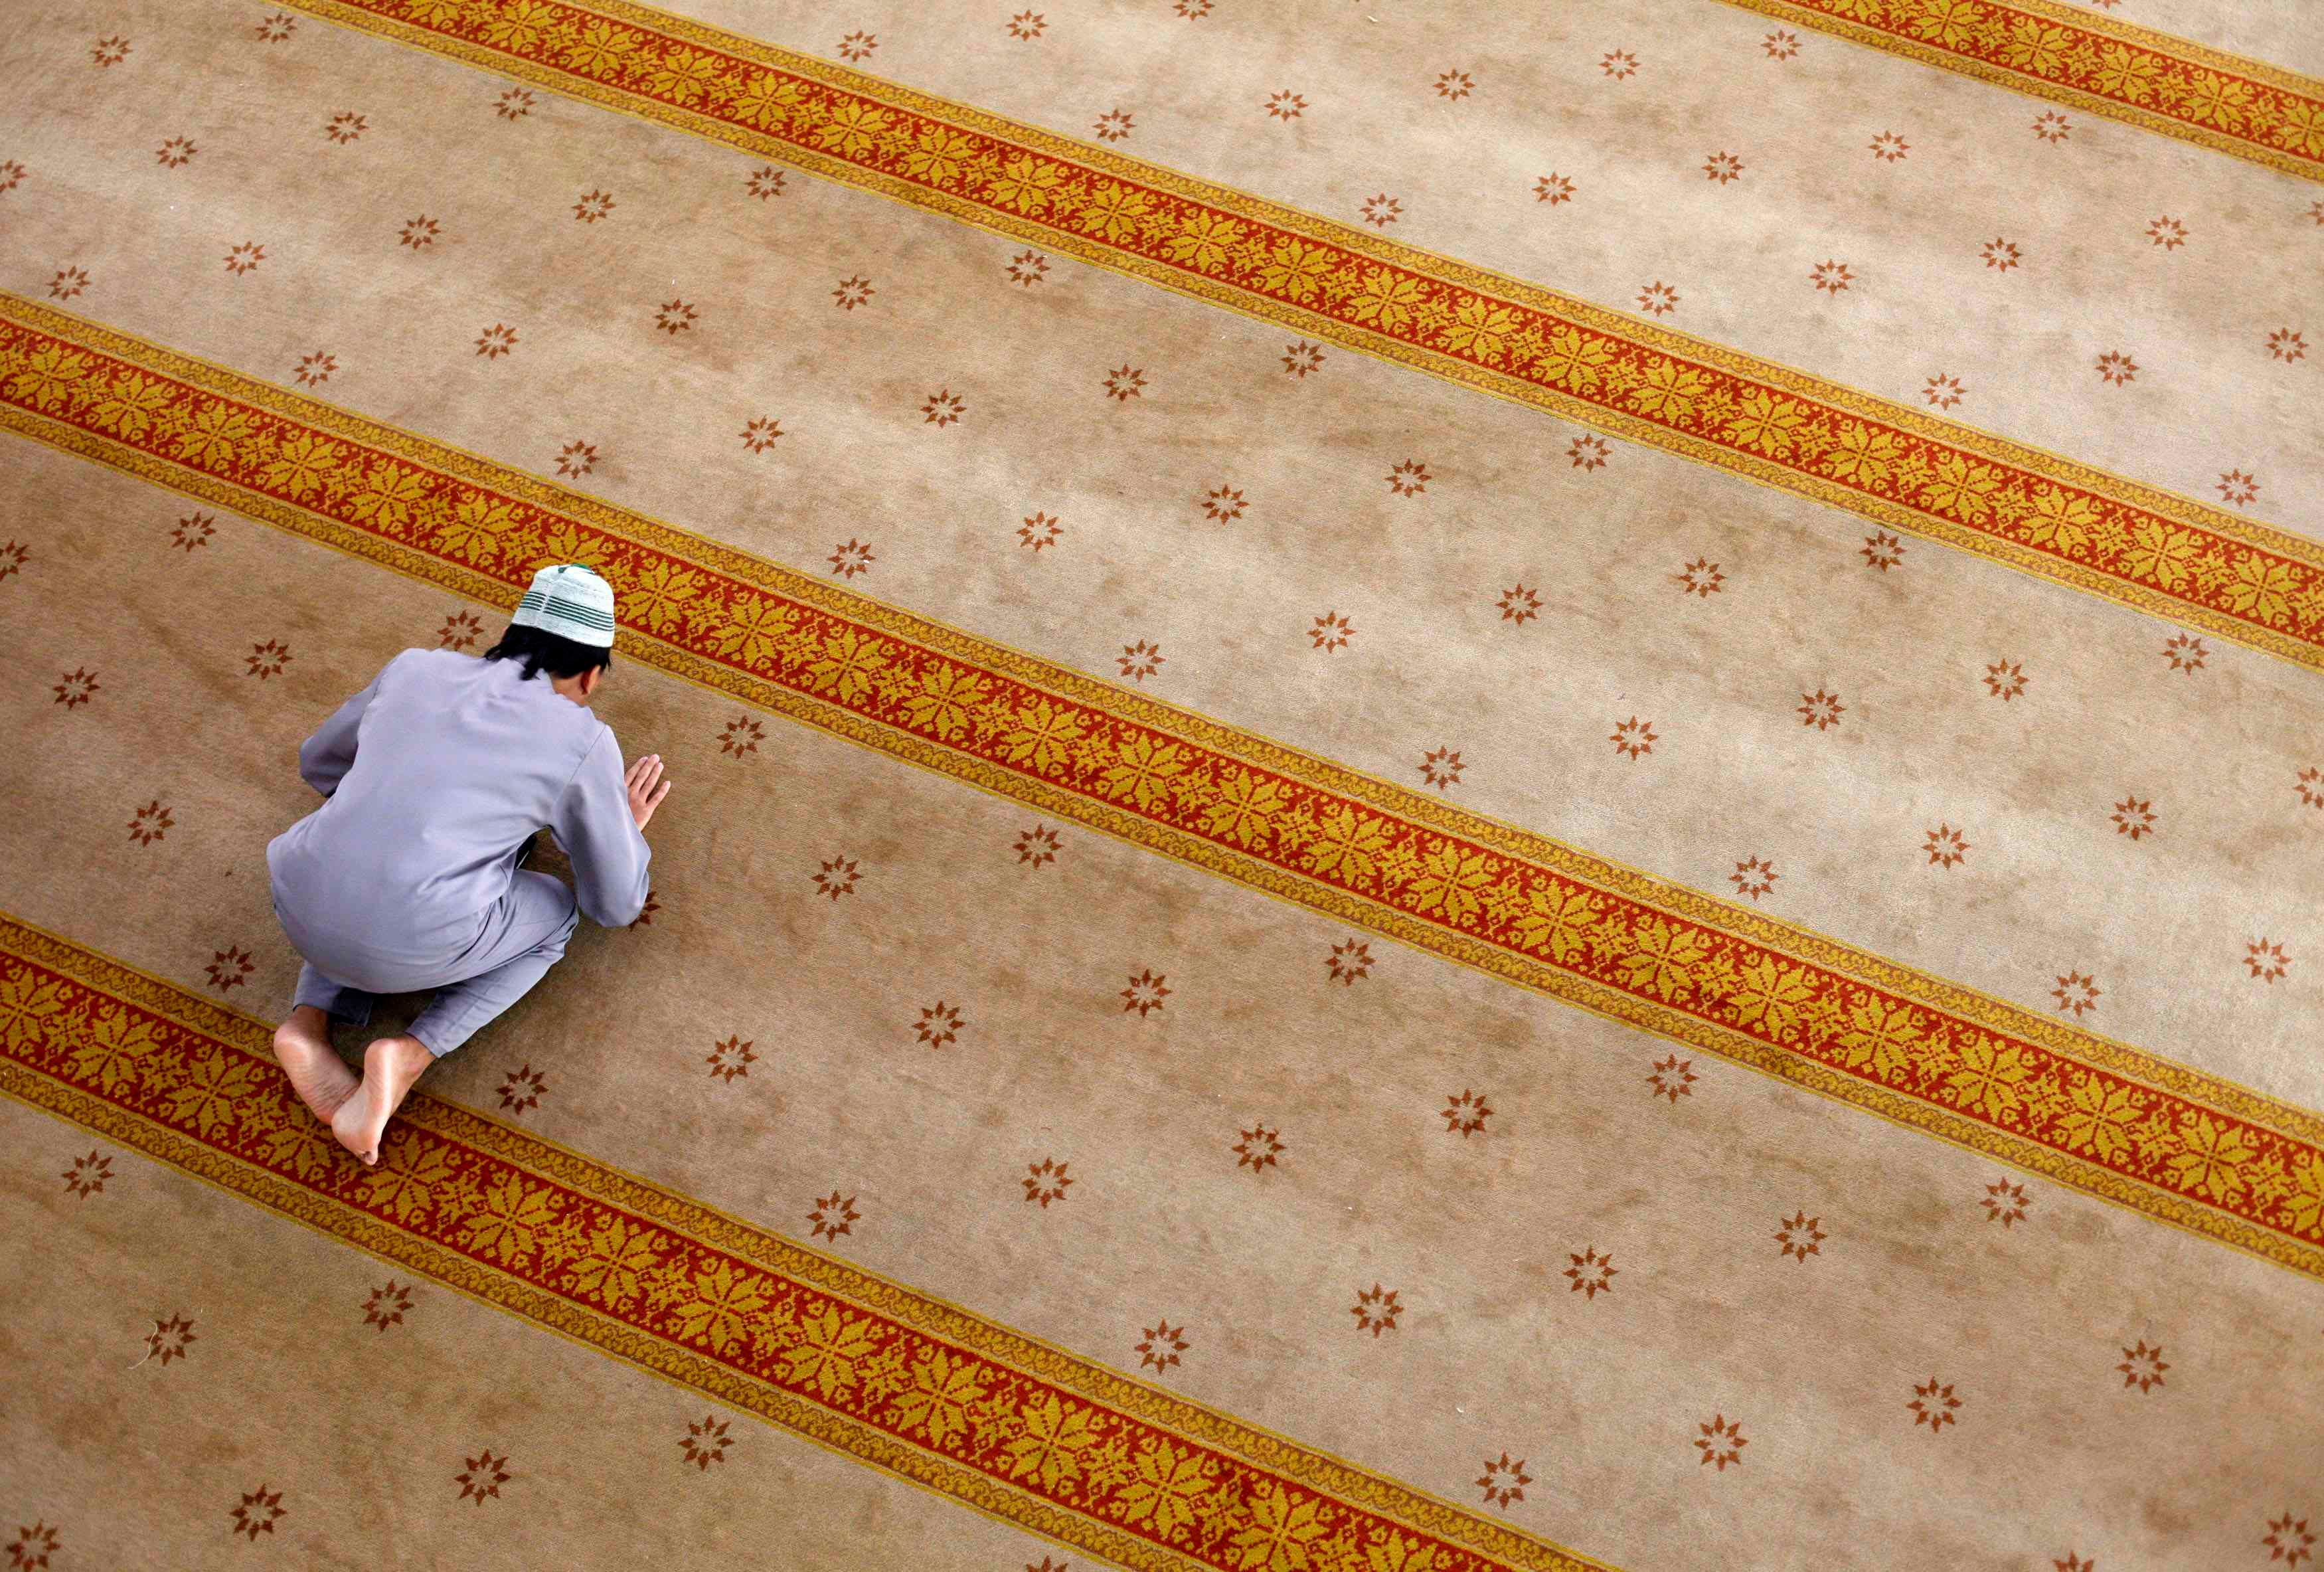 SINGAPORE: A Muslim prays at a mosque during Eid al Adha in Singapore October 15, 2013. (Reuters)